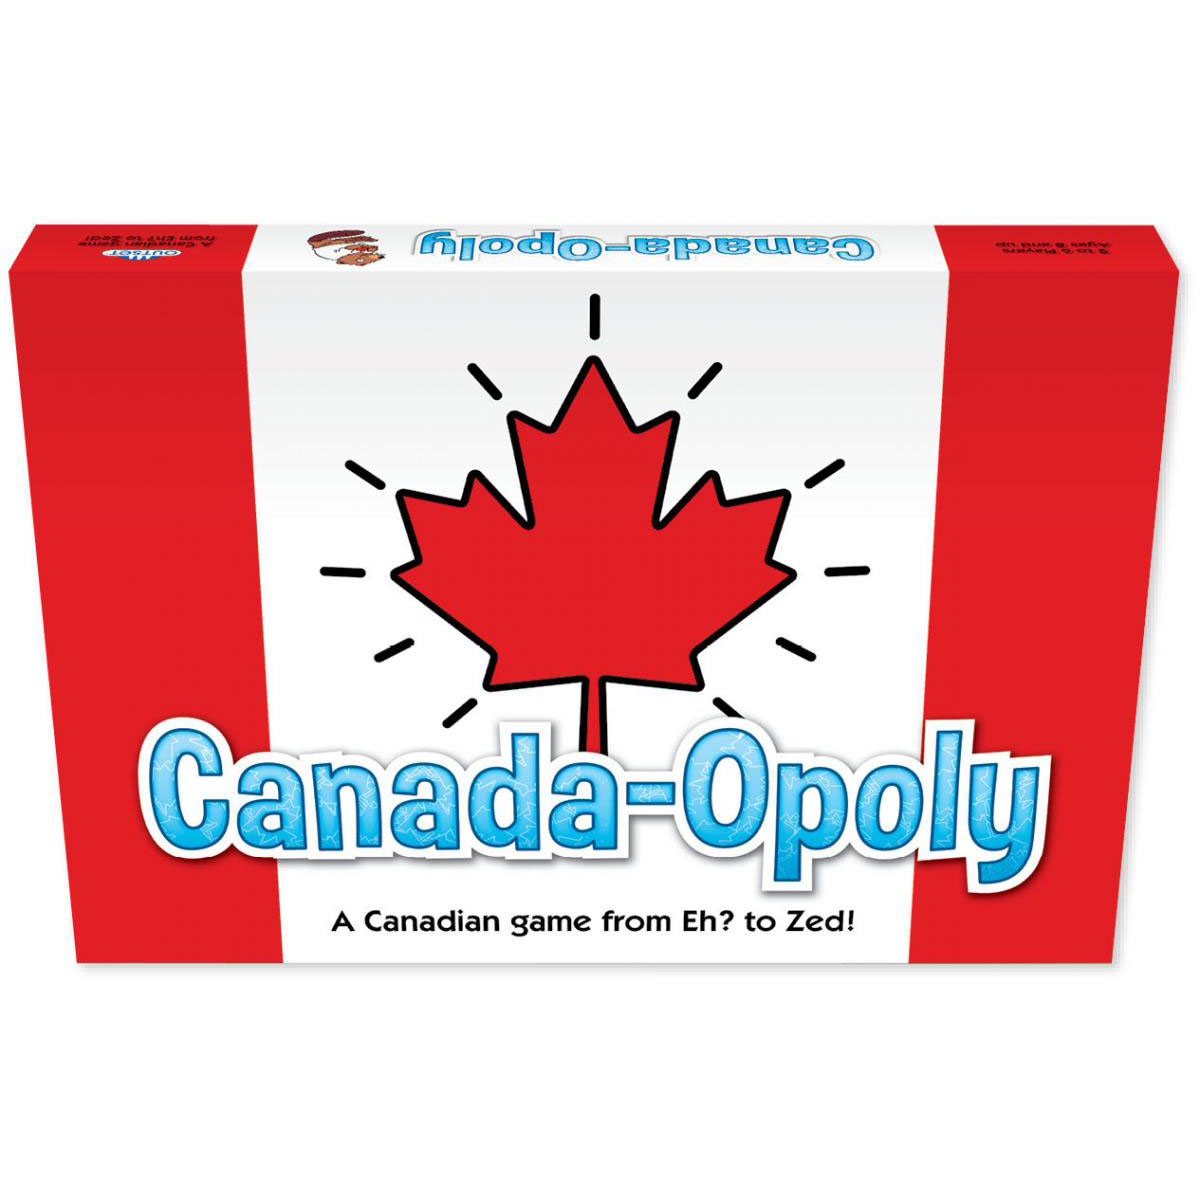 Canada-Opoly A Canadian game from Eh? to Zed!